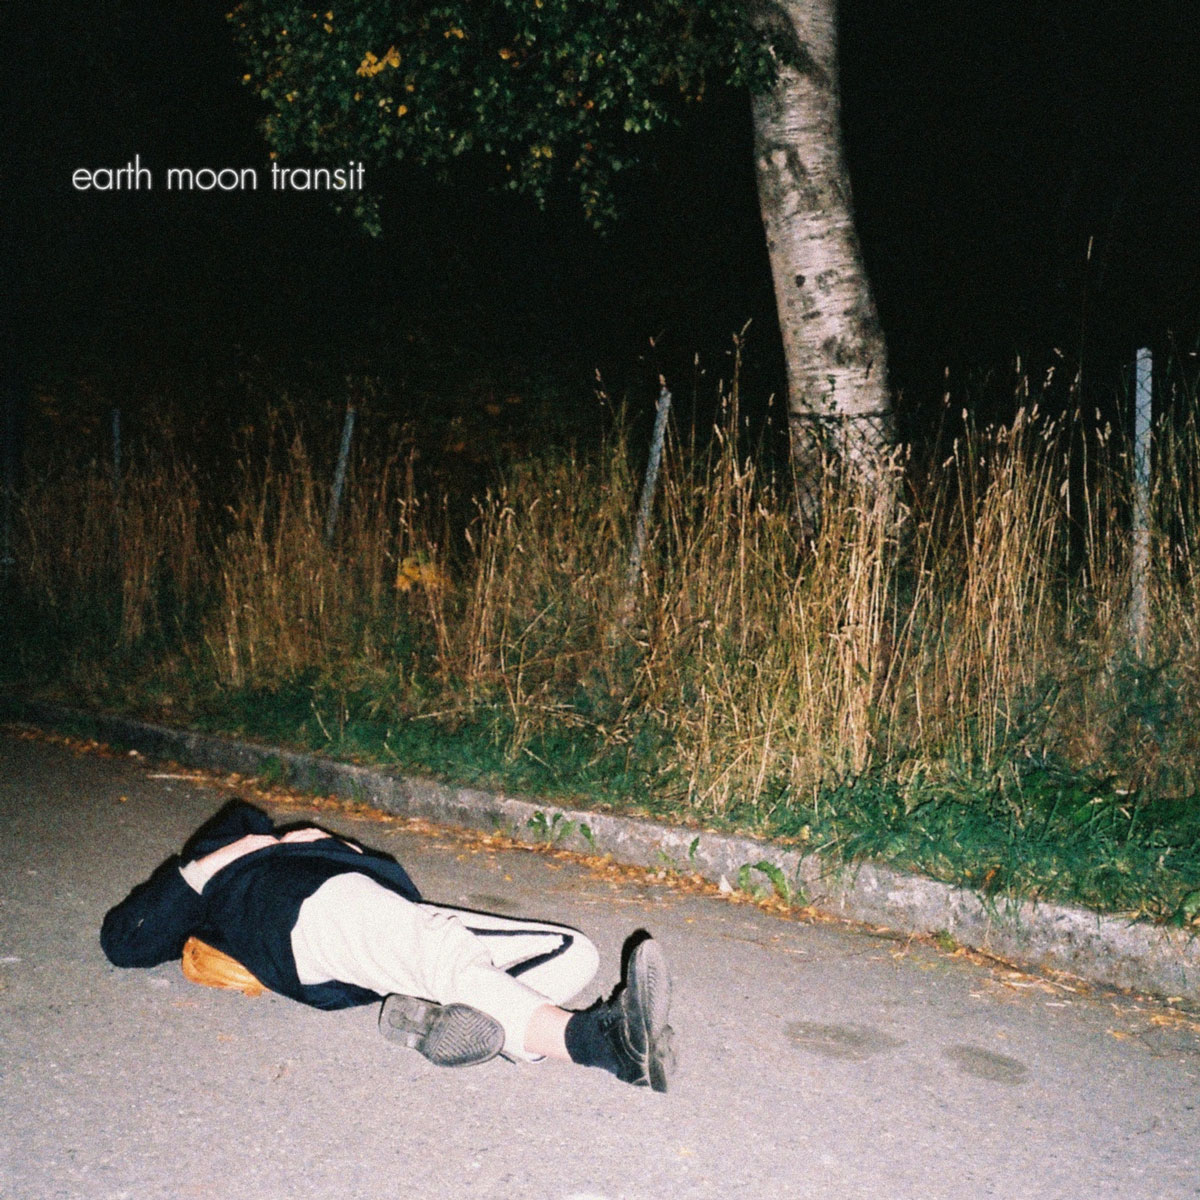 Track By Track Earth Moon Transit - Boring Songs For Boring Days